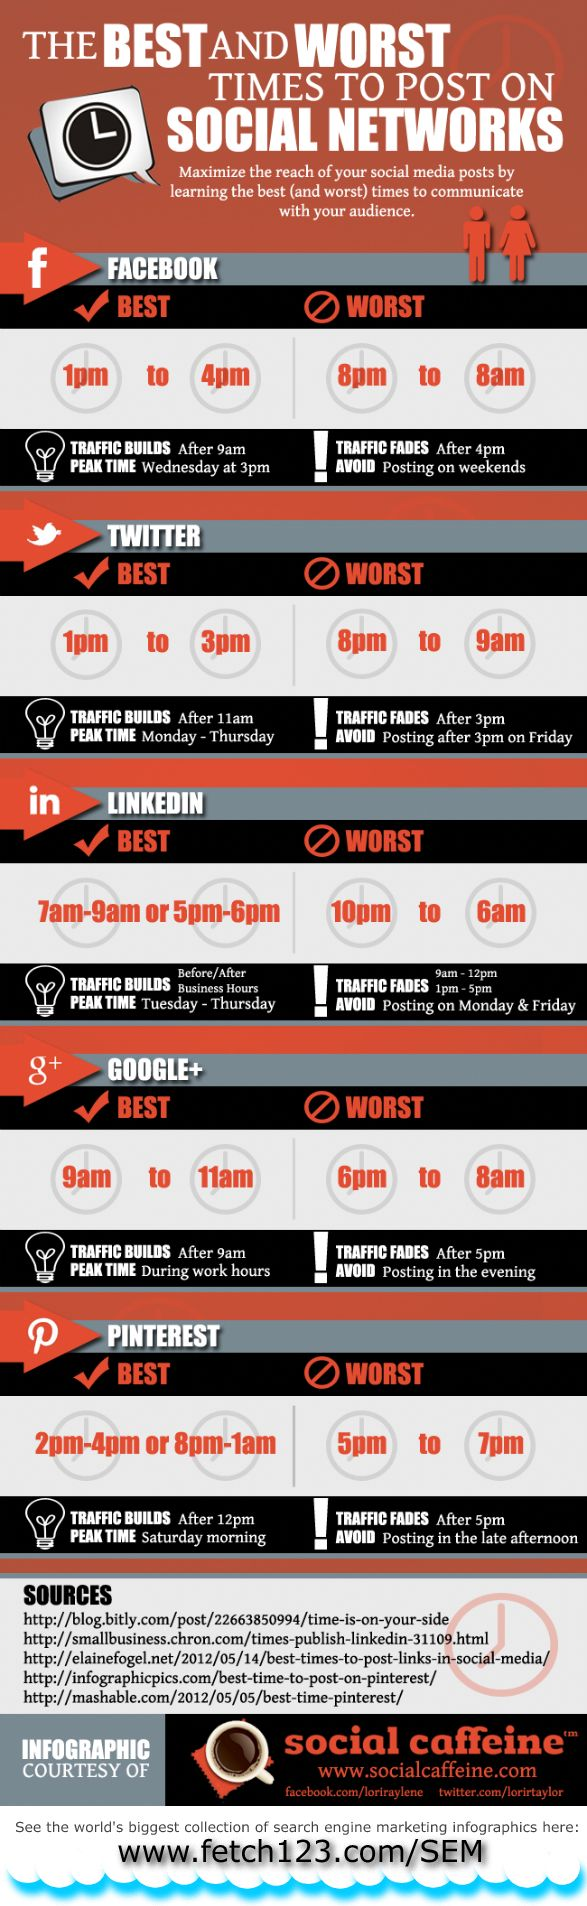 The Best and Worst Times to Post on Social Networks #Infographic #smm #socialmedia #in